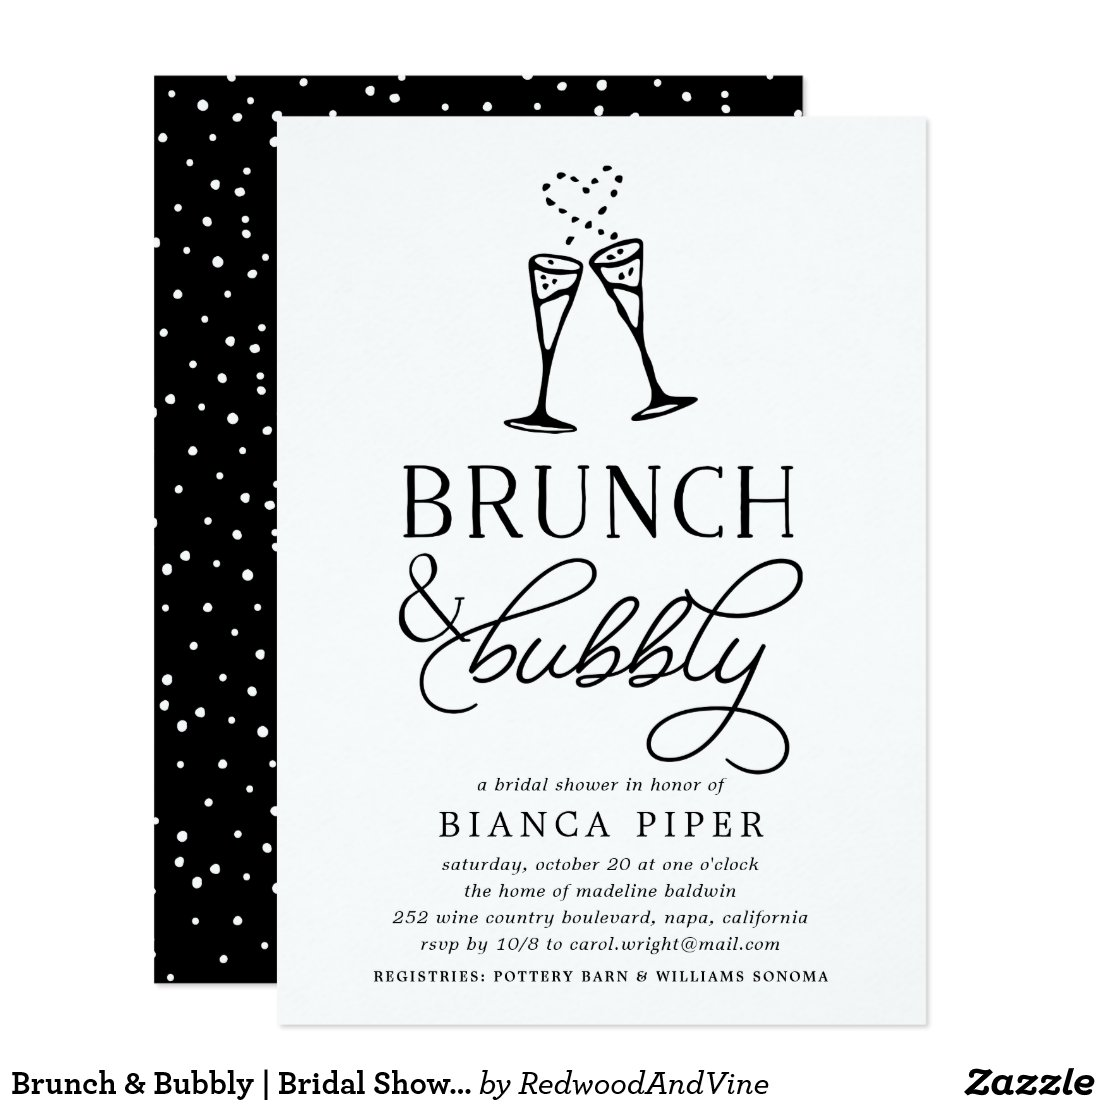 Brunch & Bubbly | Bridal Shower Invitation